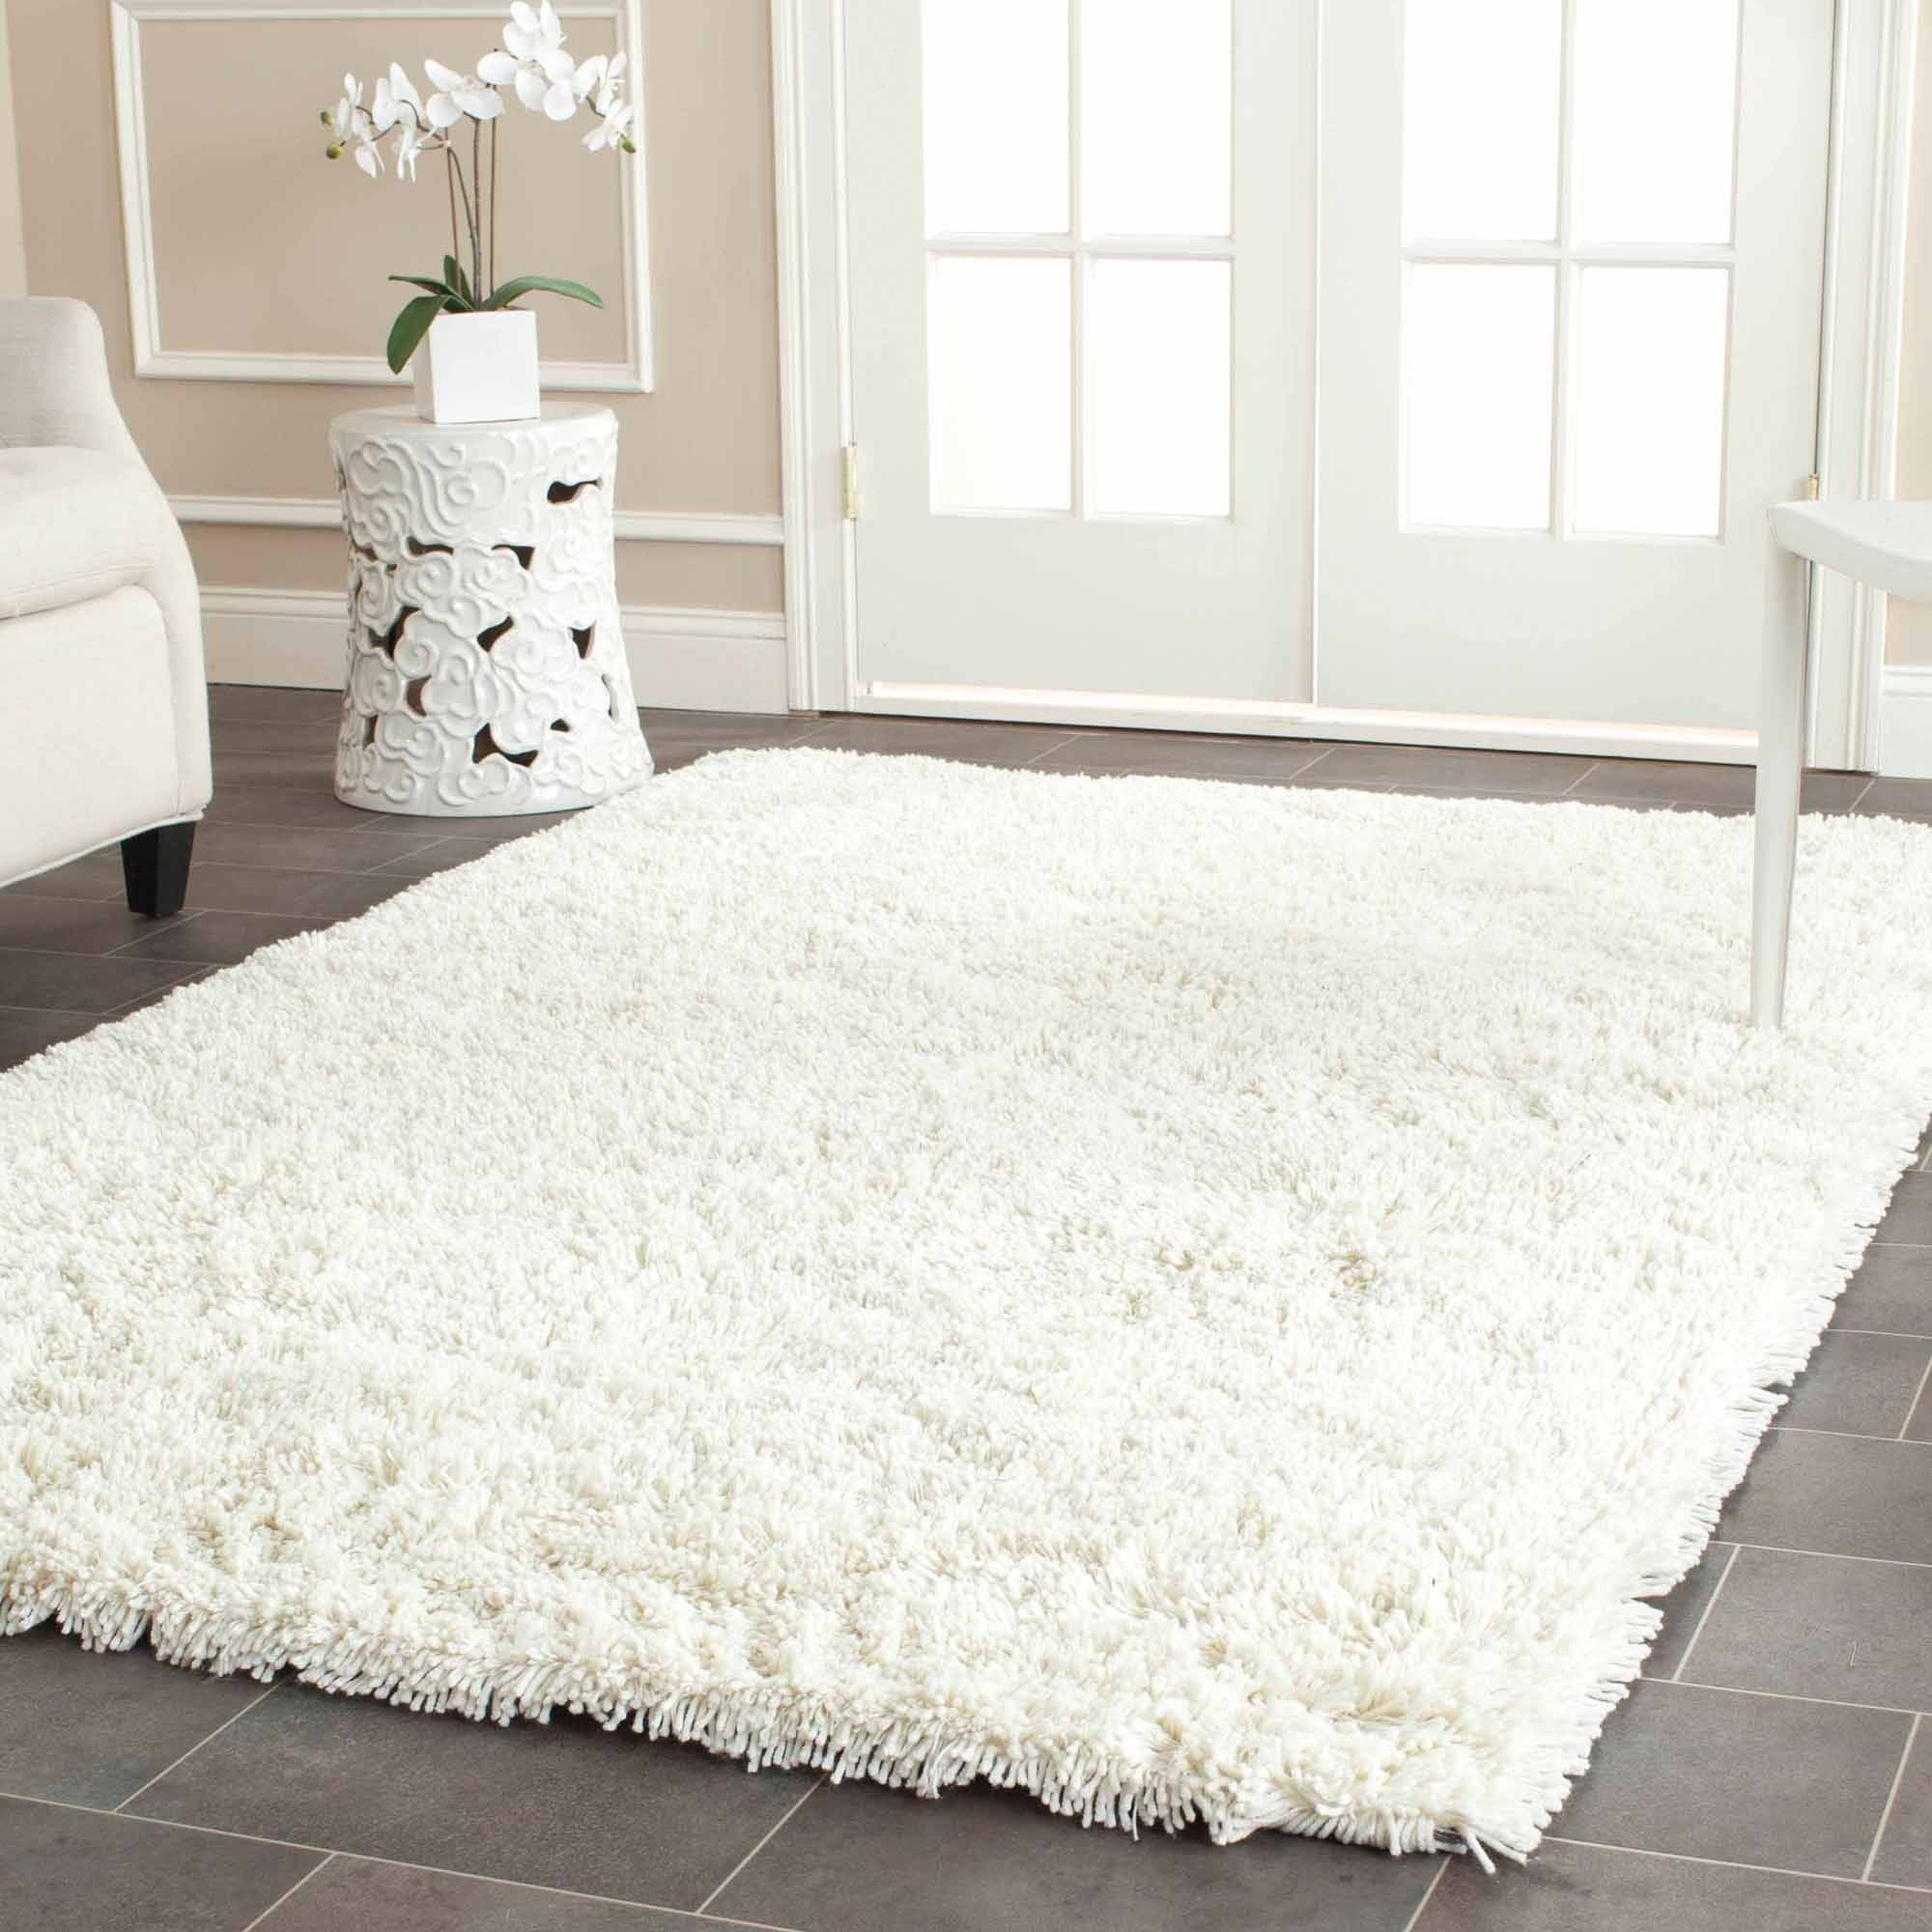 Safavieh Hand-Tufted Shag Area Rug